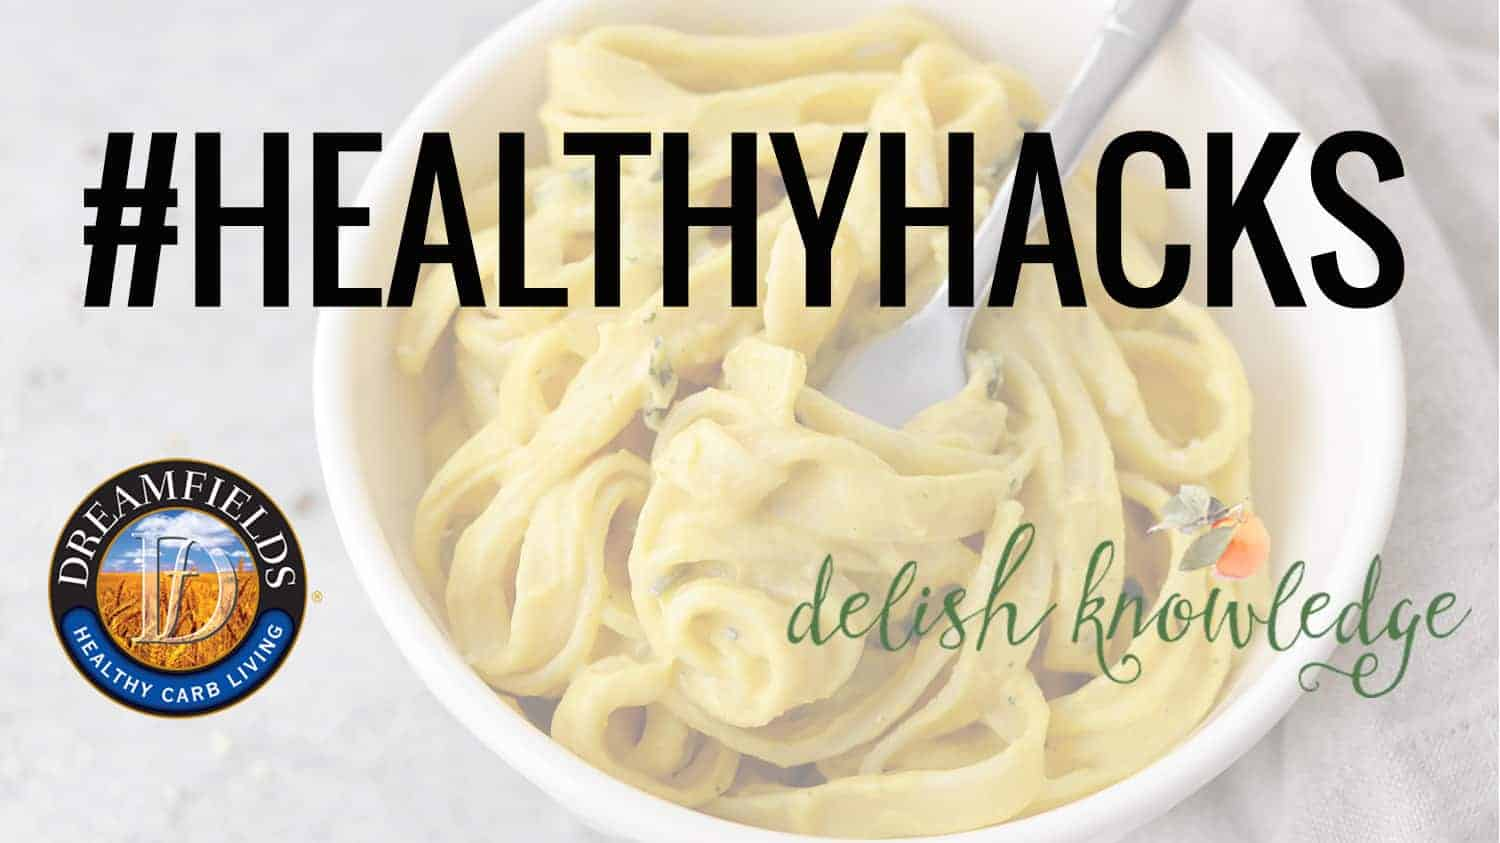 bowl of pasta with the hashtag #healthyhacks